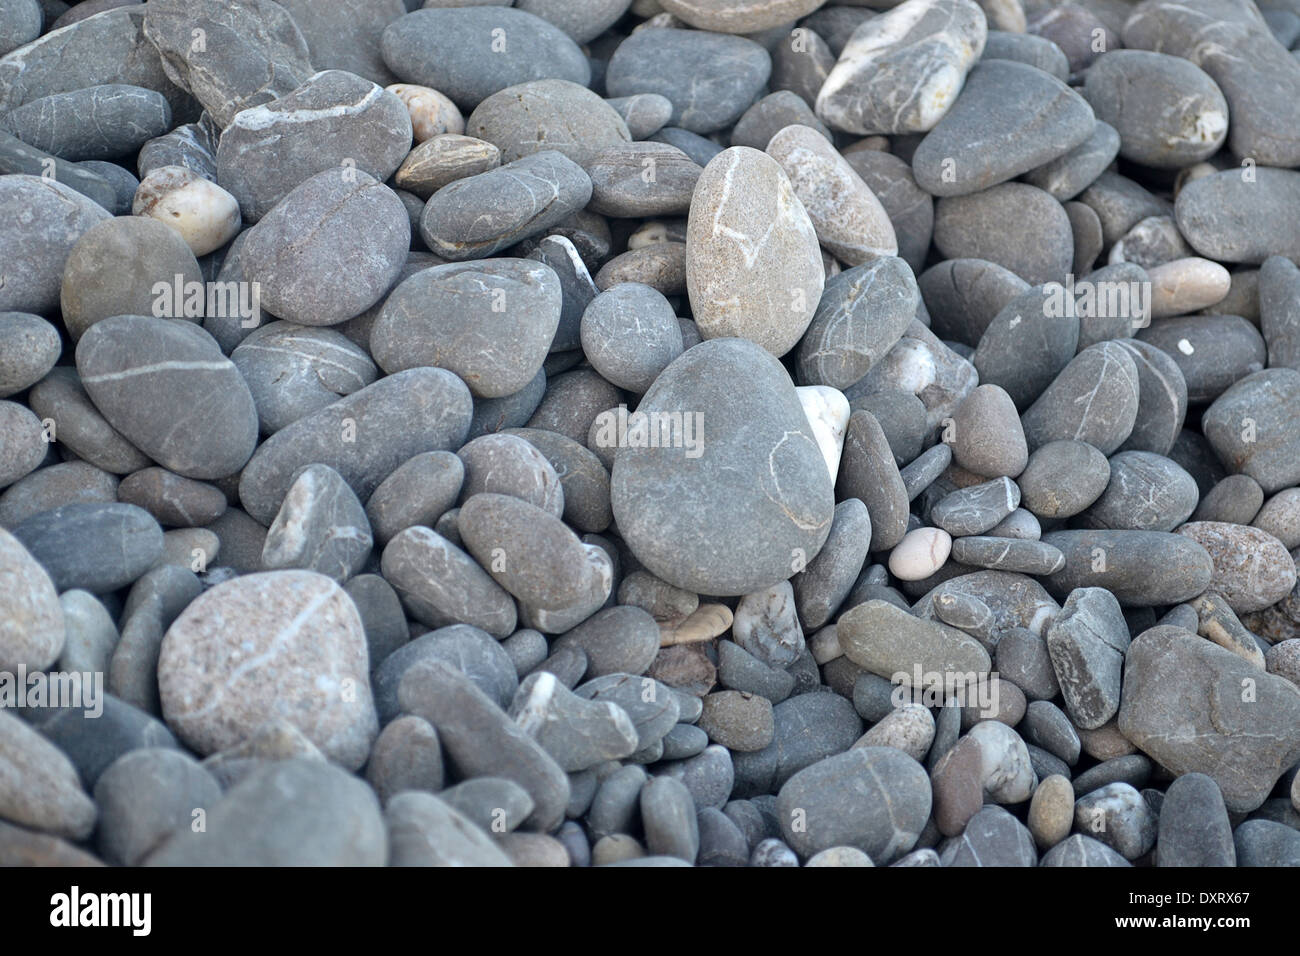 Grey pebbles on the beach at background - Stock Image